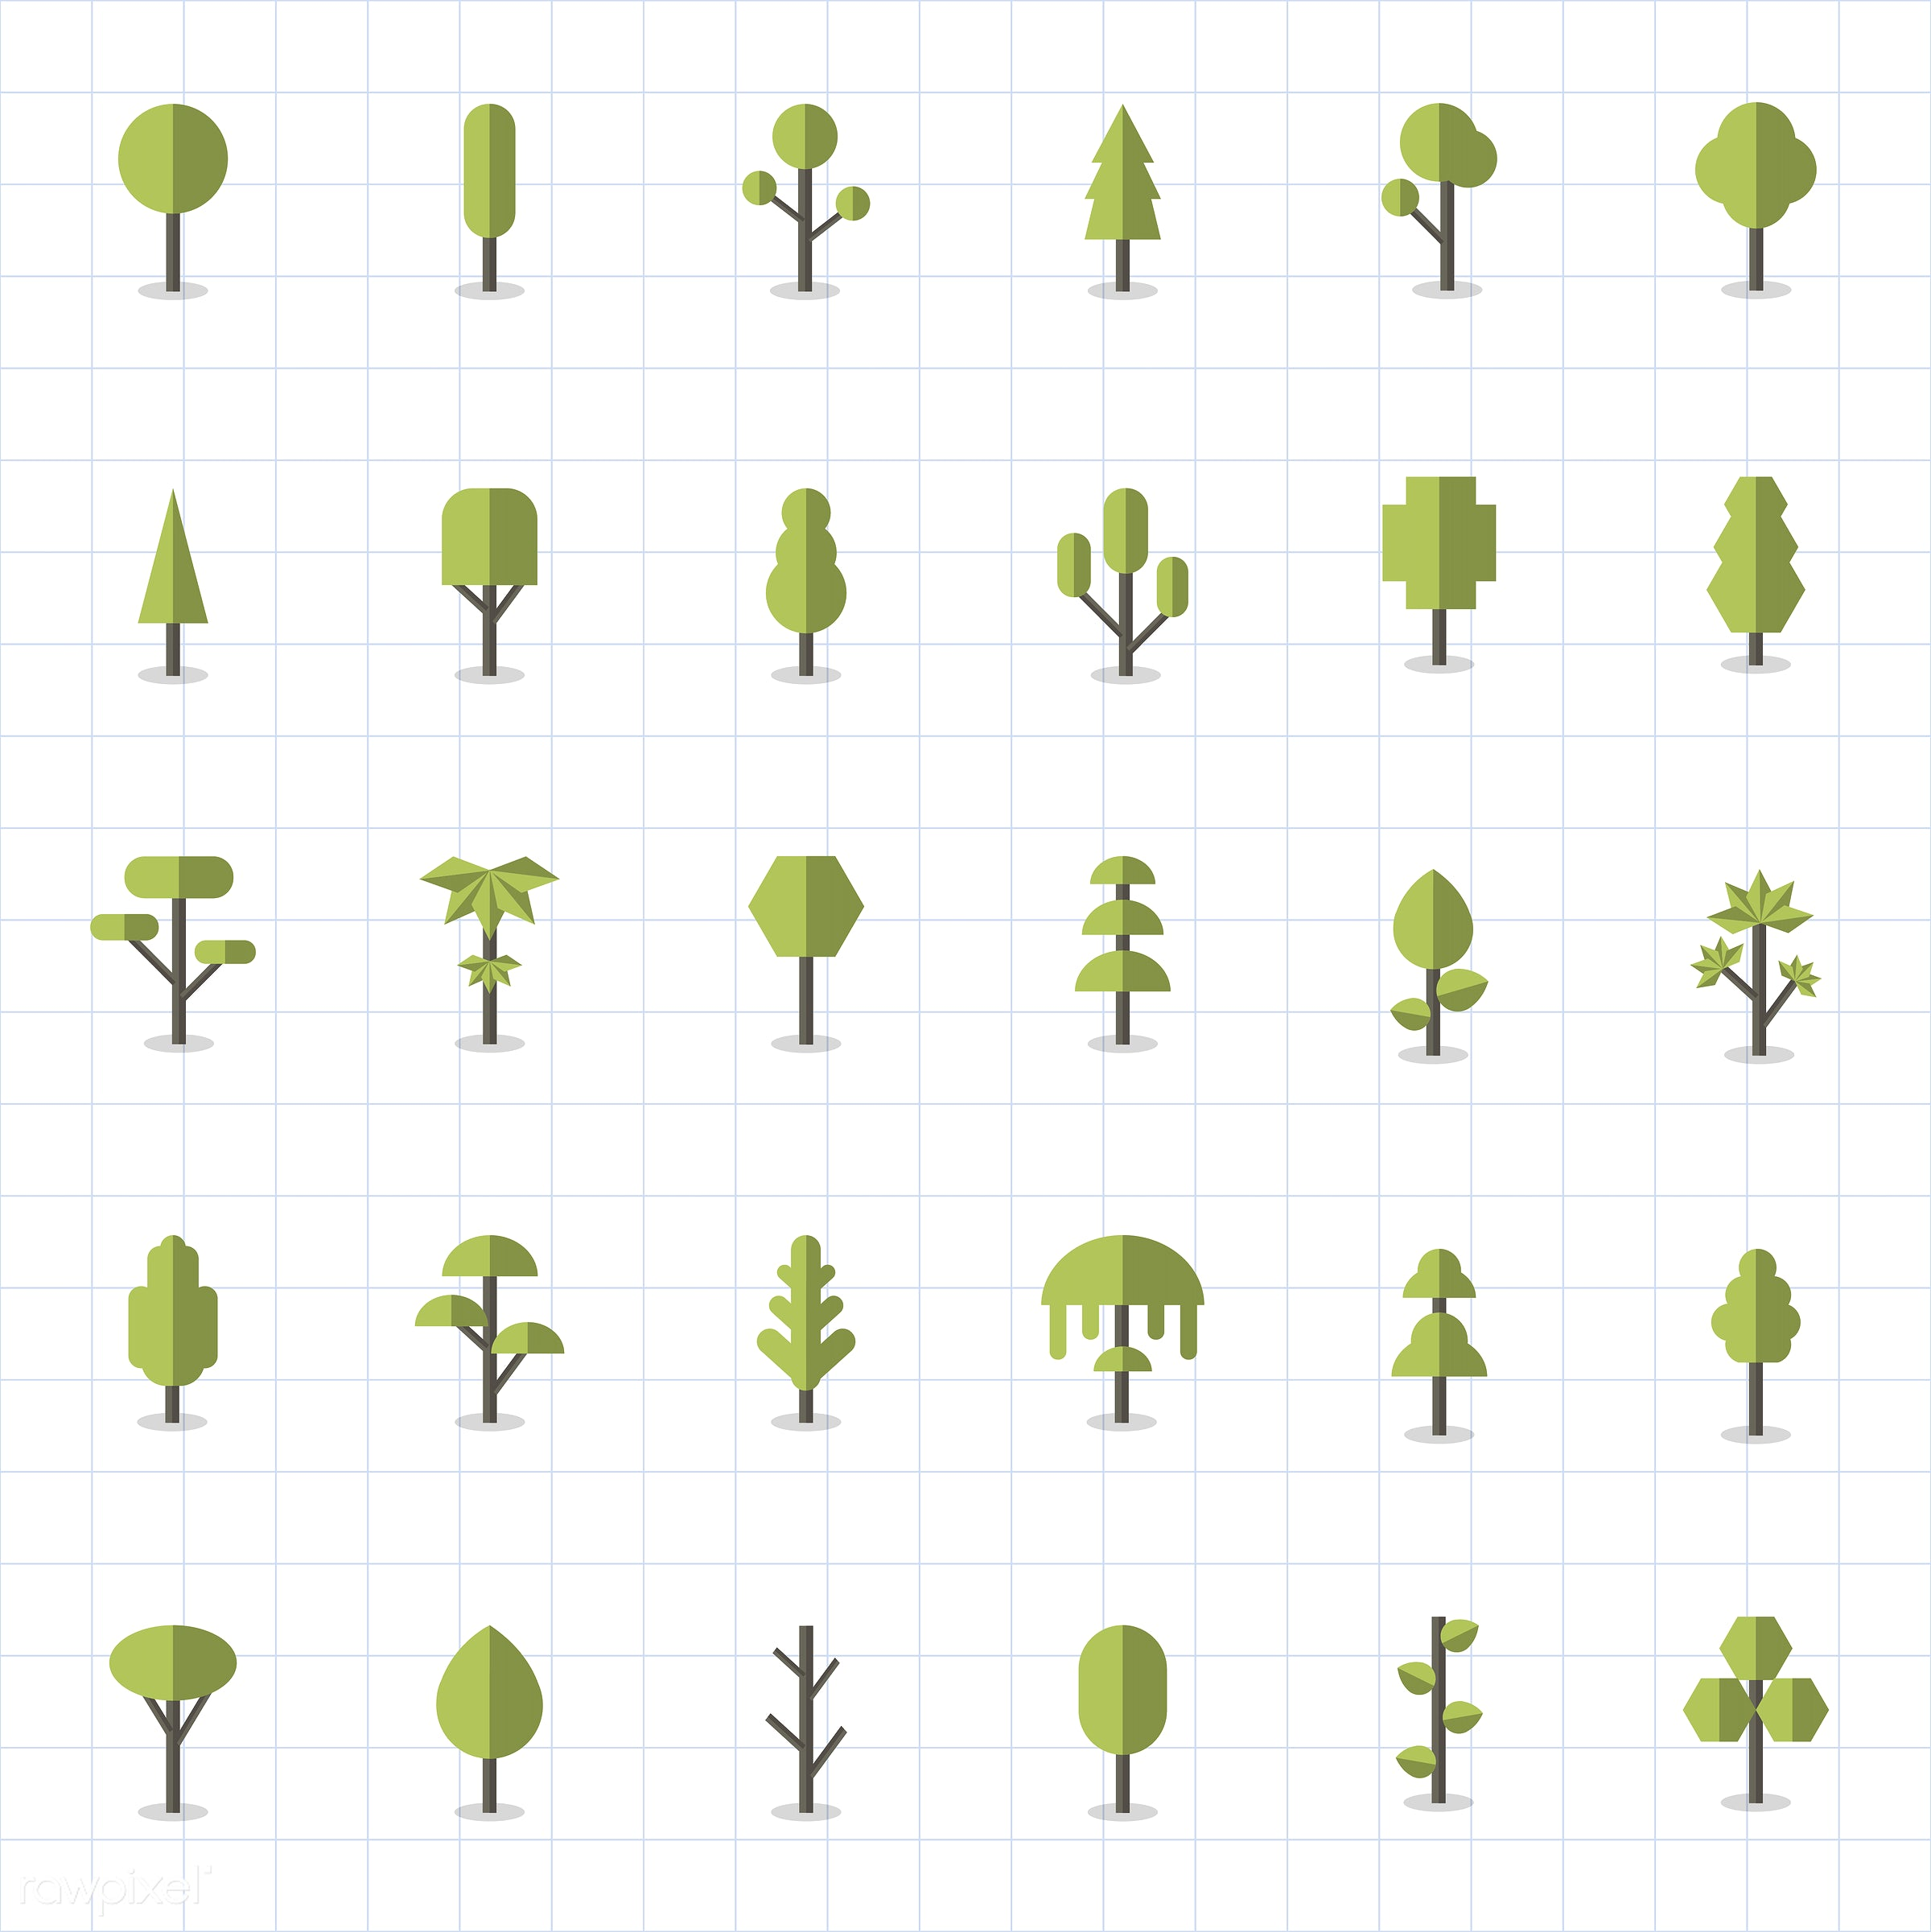 Collection of plants and tree vectors - vector, graphic, illustration, icon, symbol, collection, set, colorful, cute, plant...